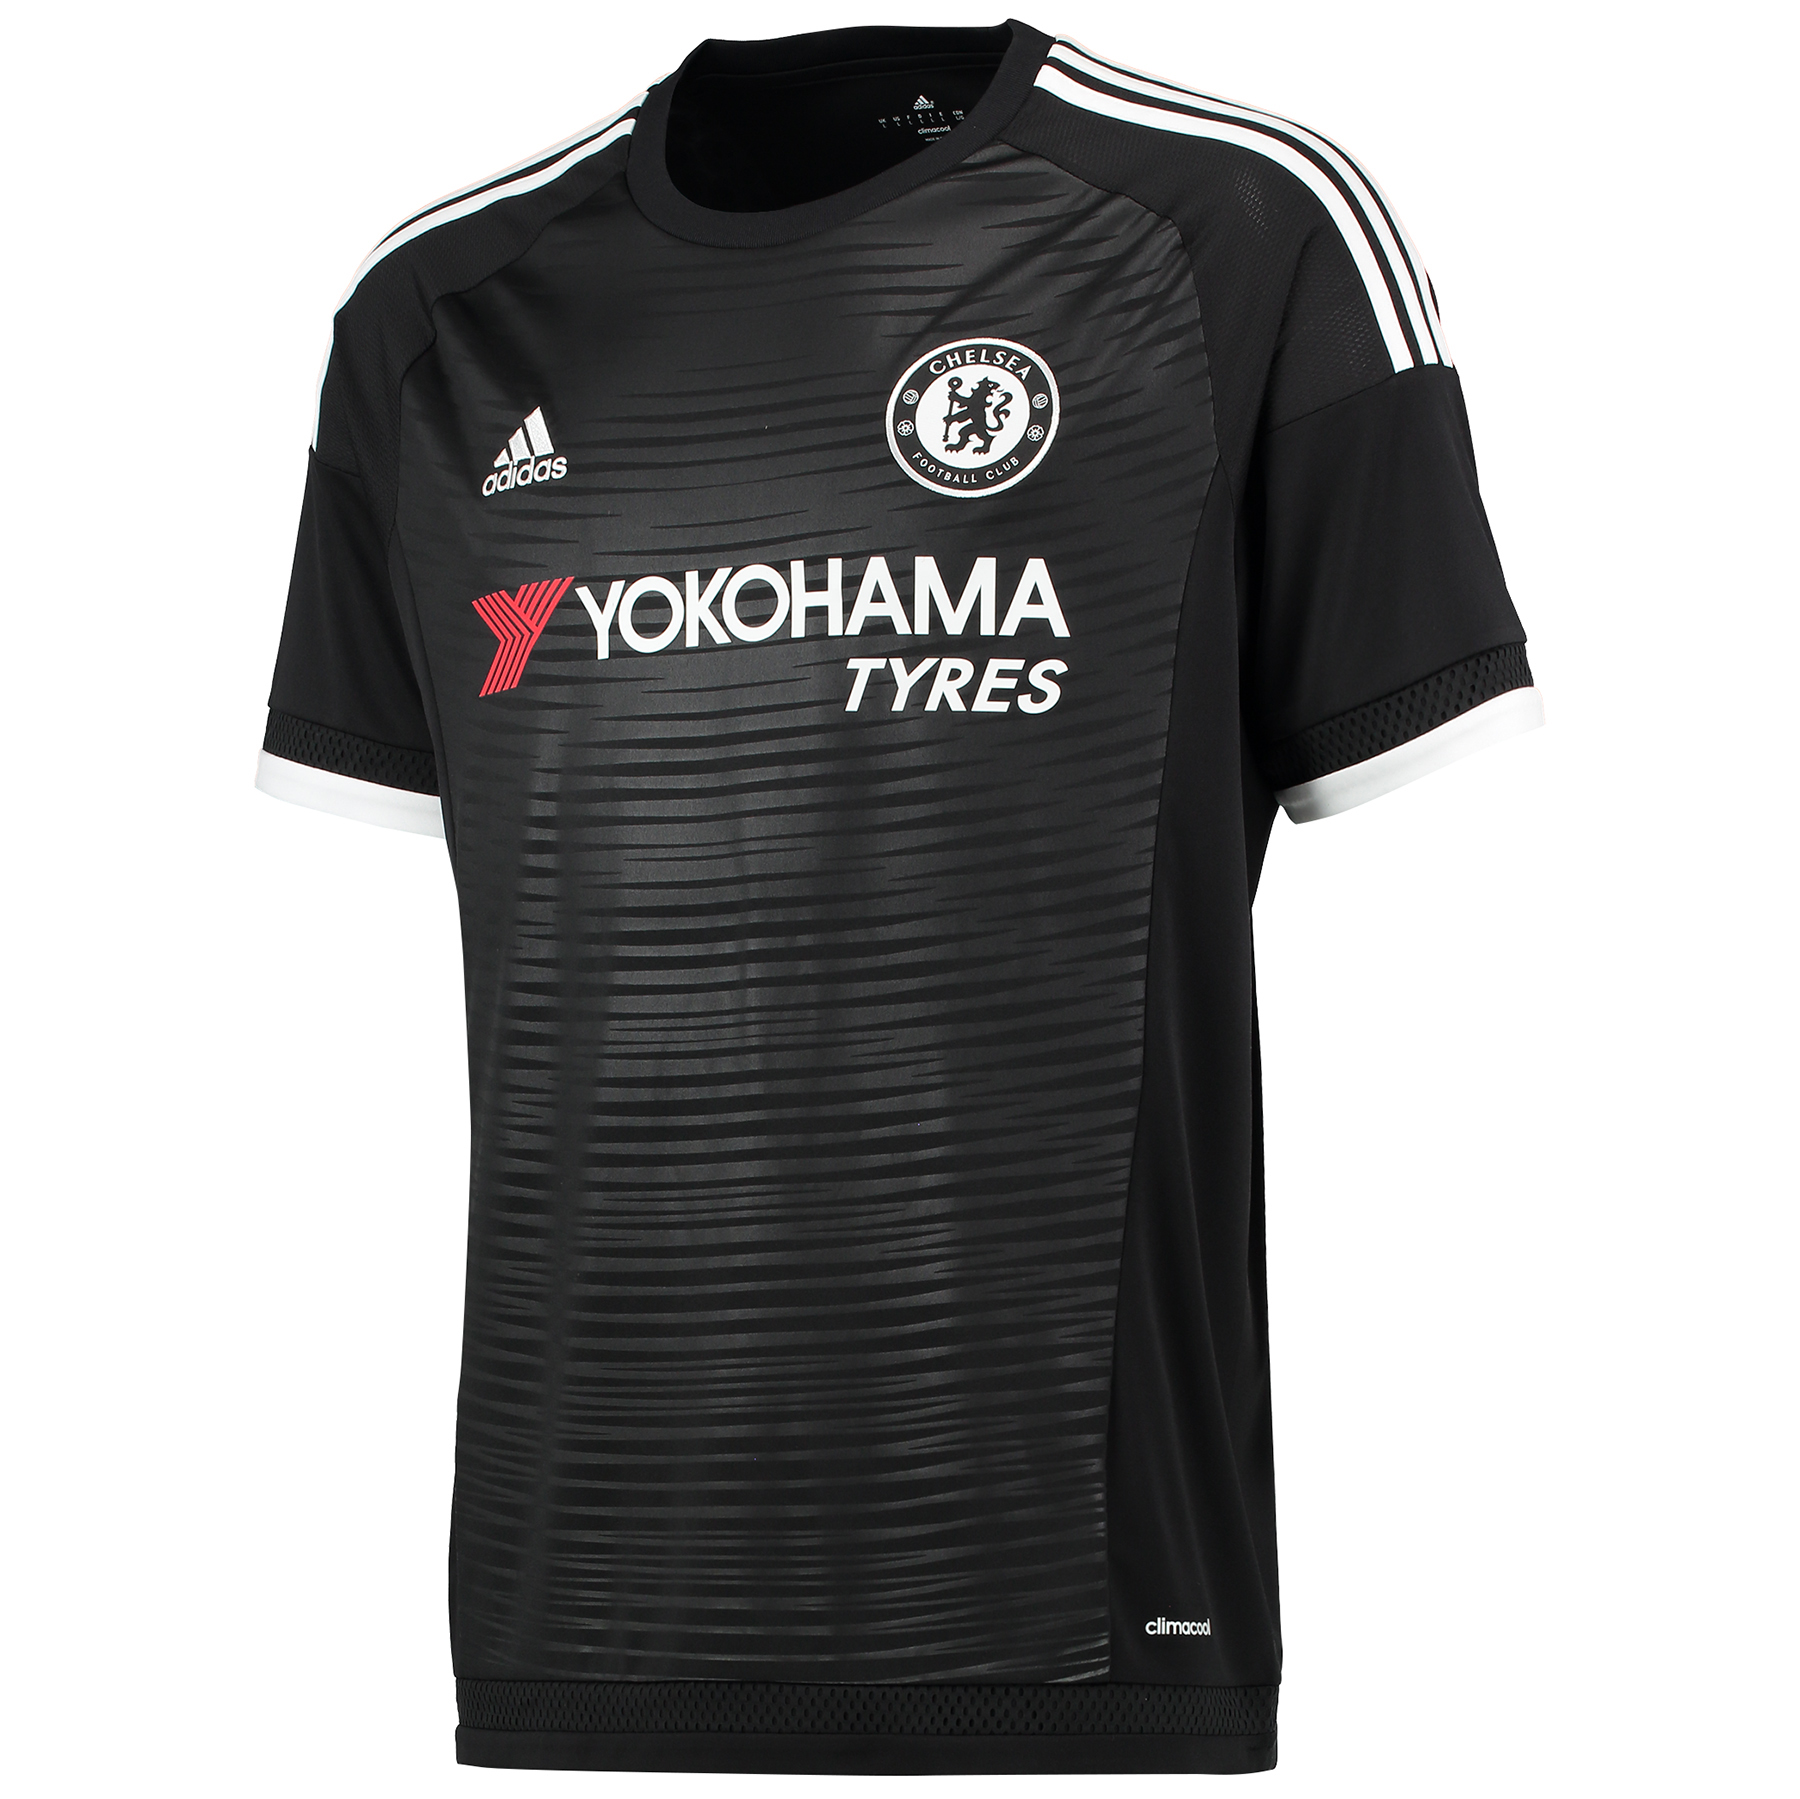 Chelsea Third Shirt 2015/16 - Black   When the Blues circulate their passes and open up shots, they wear a version of this men's football jersey. Based on the one from their third kit, this Chelsea Third Shirt features breathable climacool® ventilation and their team badge on the chest for comfort and pride.   Benefits: Ventilated climacool® keeps you cool and dry Ribbed crewneck; Raglan sleeves; Mesh ventilation inserts Fingerprint-inspired embossing; Chelsea Football Club woven badge on left chest; Regular fit 100% recycled polyester interlock   About the CFC 3rd Kit The fingerprint story told through a bold and modern graphic on the shorts and mirrored with an embossing on the shirt. The fingerprint label adds value and contributes further to the story CLIMACOOL® Provides heat and moisture management through ventilation. Regular Fit Club crest: woven badge The fingerprint represents the identity of all Chelsea fans Bold fingerprint inspired embossing 100% rec.Polyester adidas sustainable product program This product is part of the adidas sustainable product program: Products are made in more sustainable ways to make the world a better place. Every fibre counts: Recycled polyester saves resources and decreases emissions.